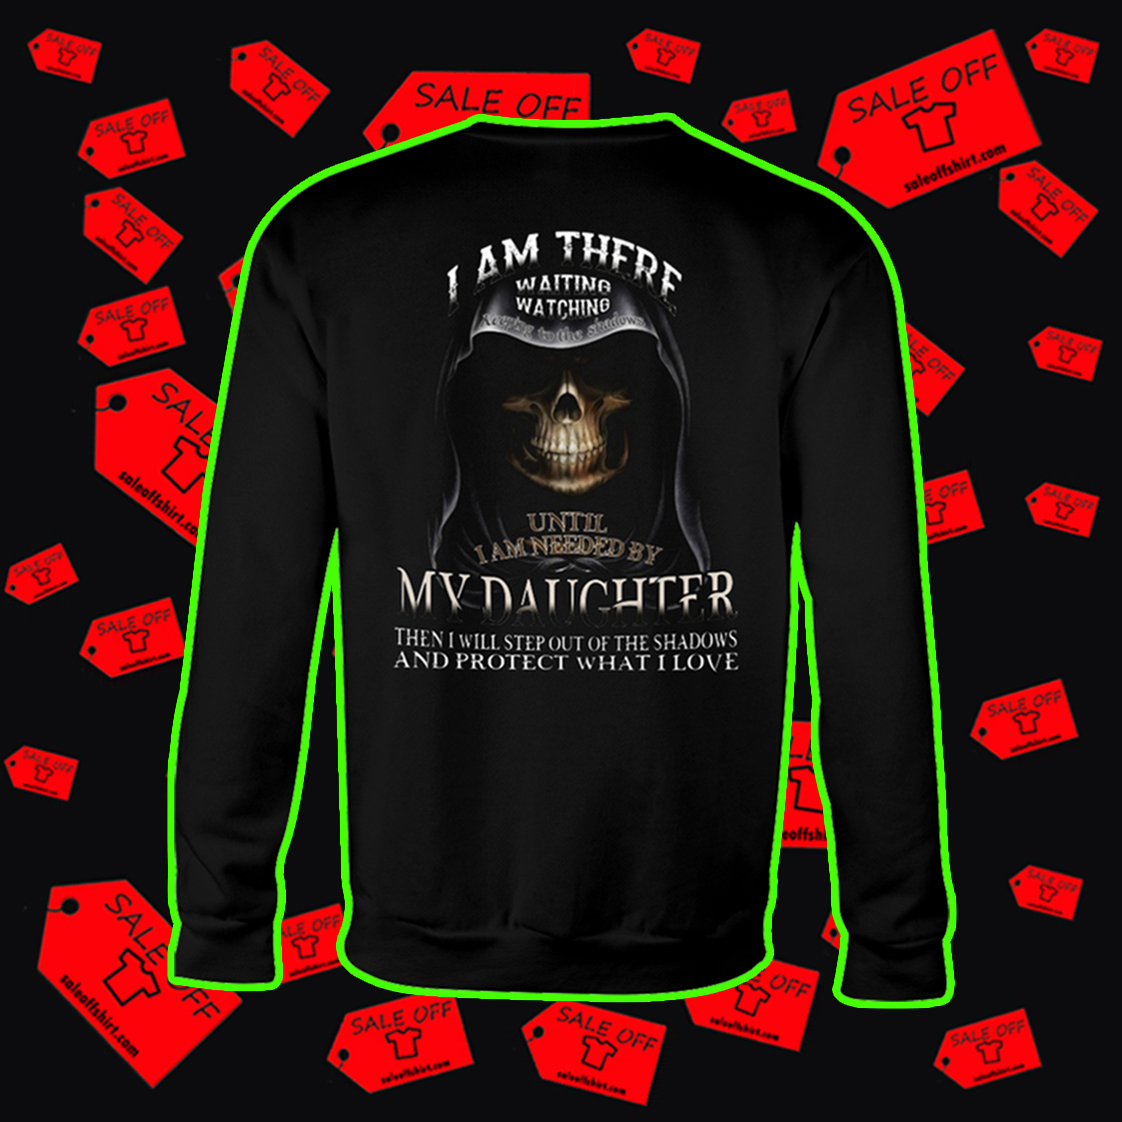 I am there waiting watching keeping to the shadows until I'm needed by my daughter sweatshirt